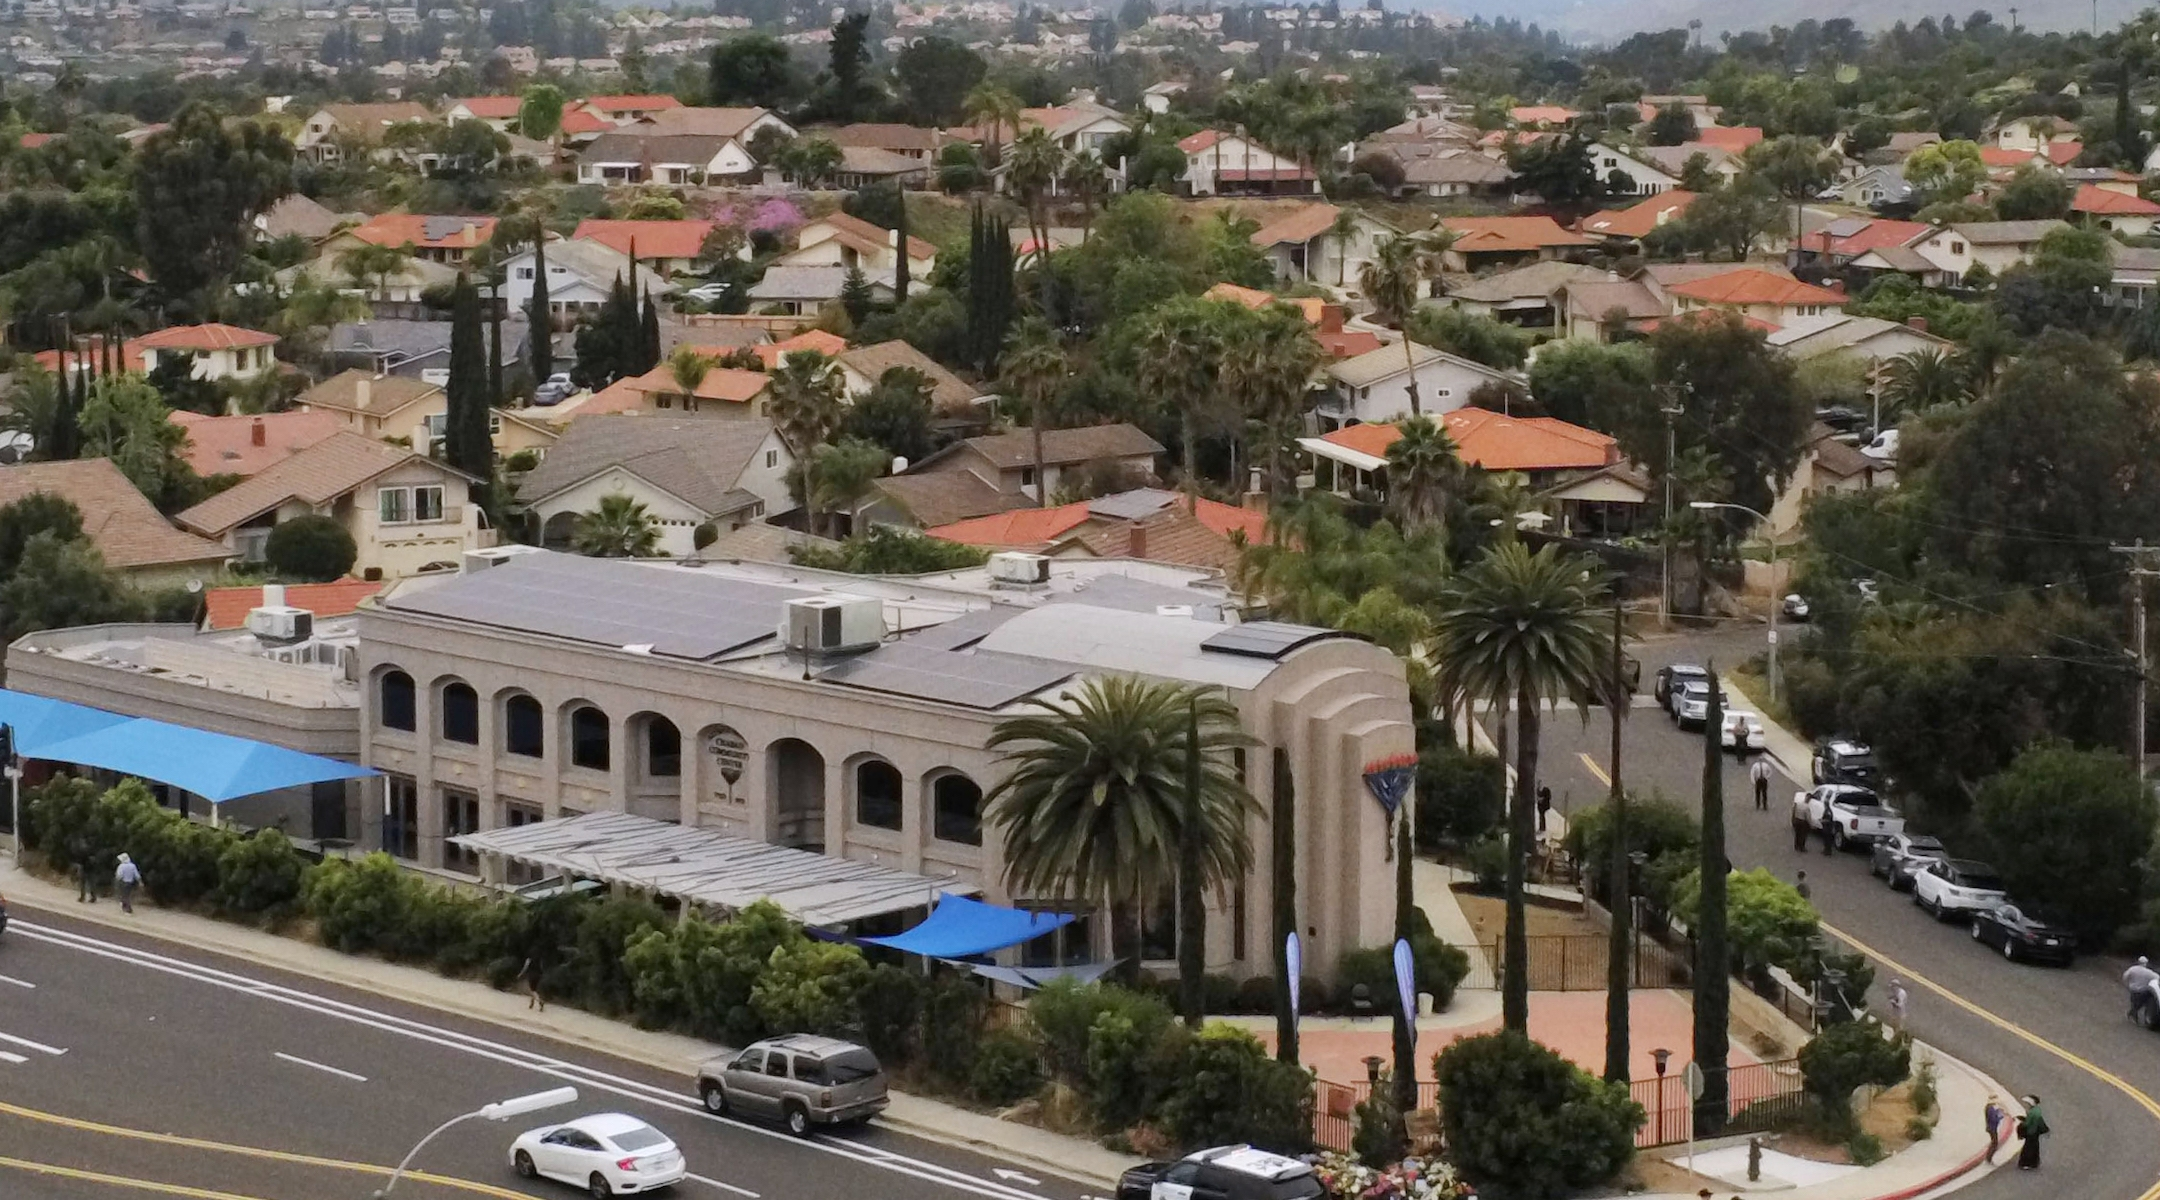 An aerial view of the Chabad of Poway synagogue in Poway, Calif. on April 28, 2019, a day after a deadly shooting there. (Sandy Huffaker/AFP via Getty Images)